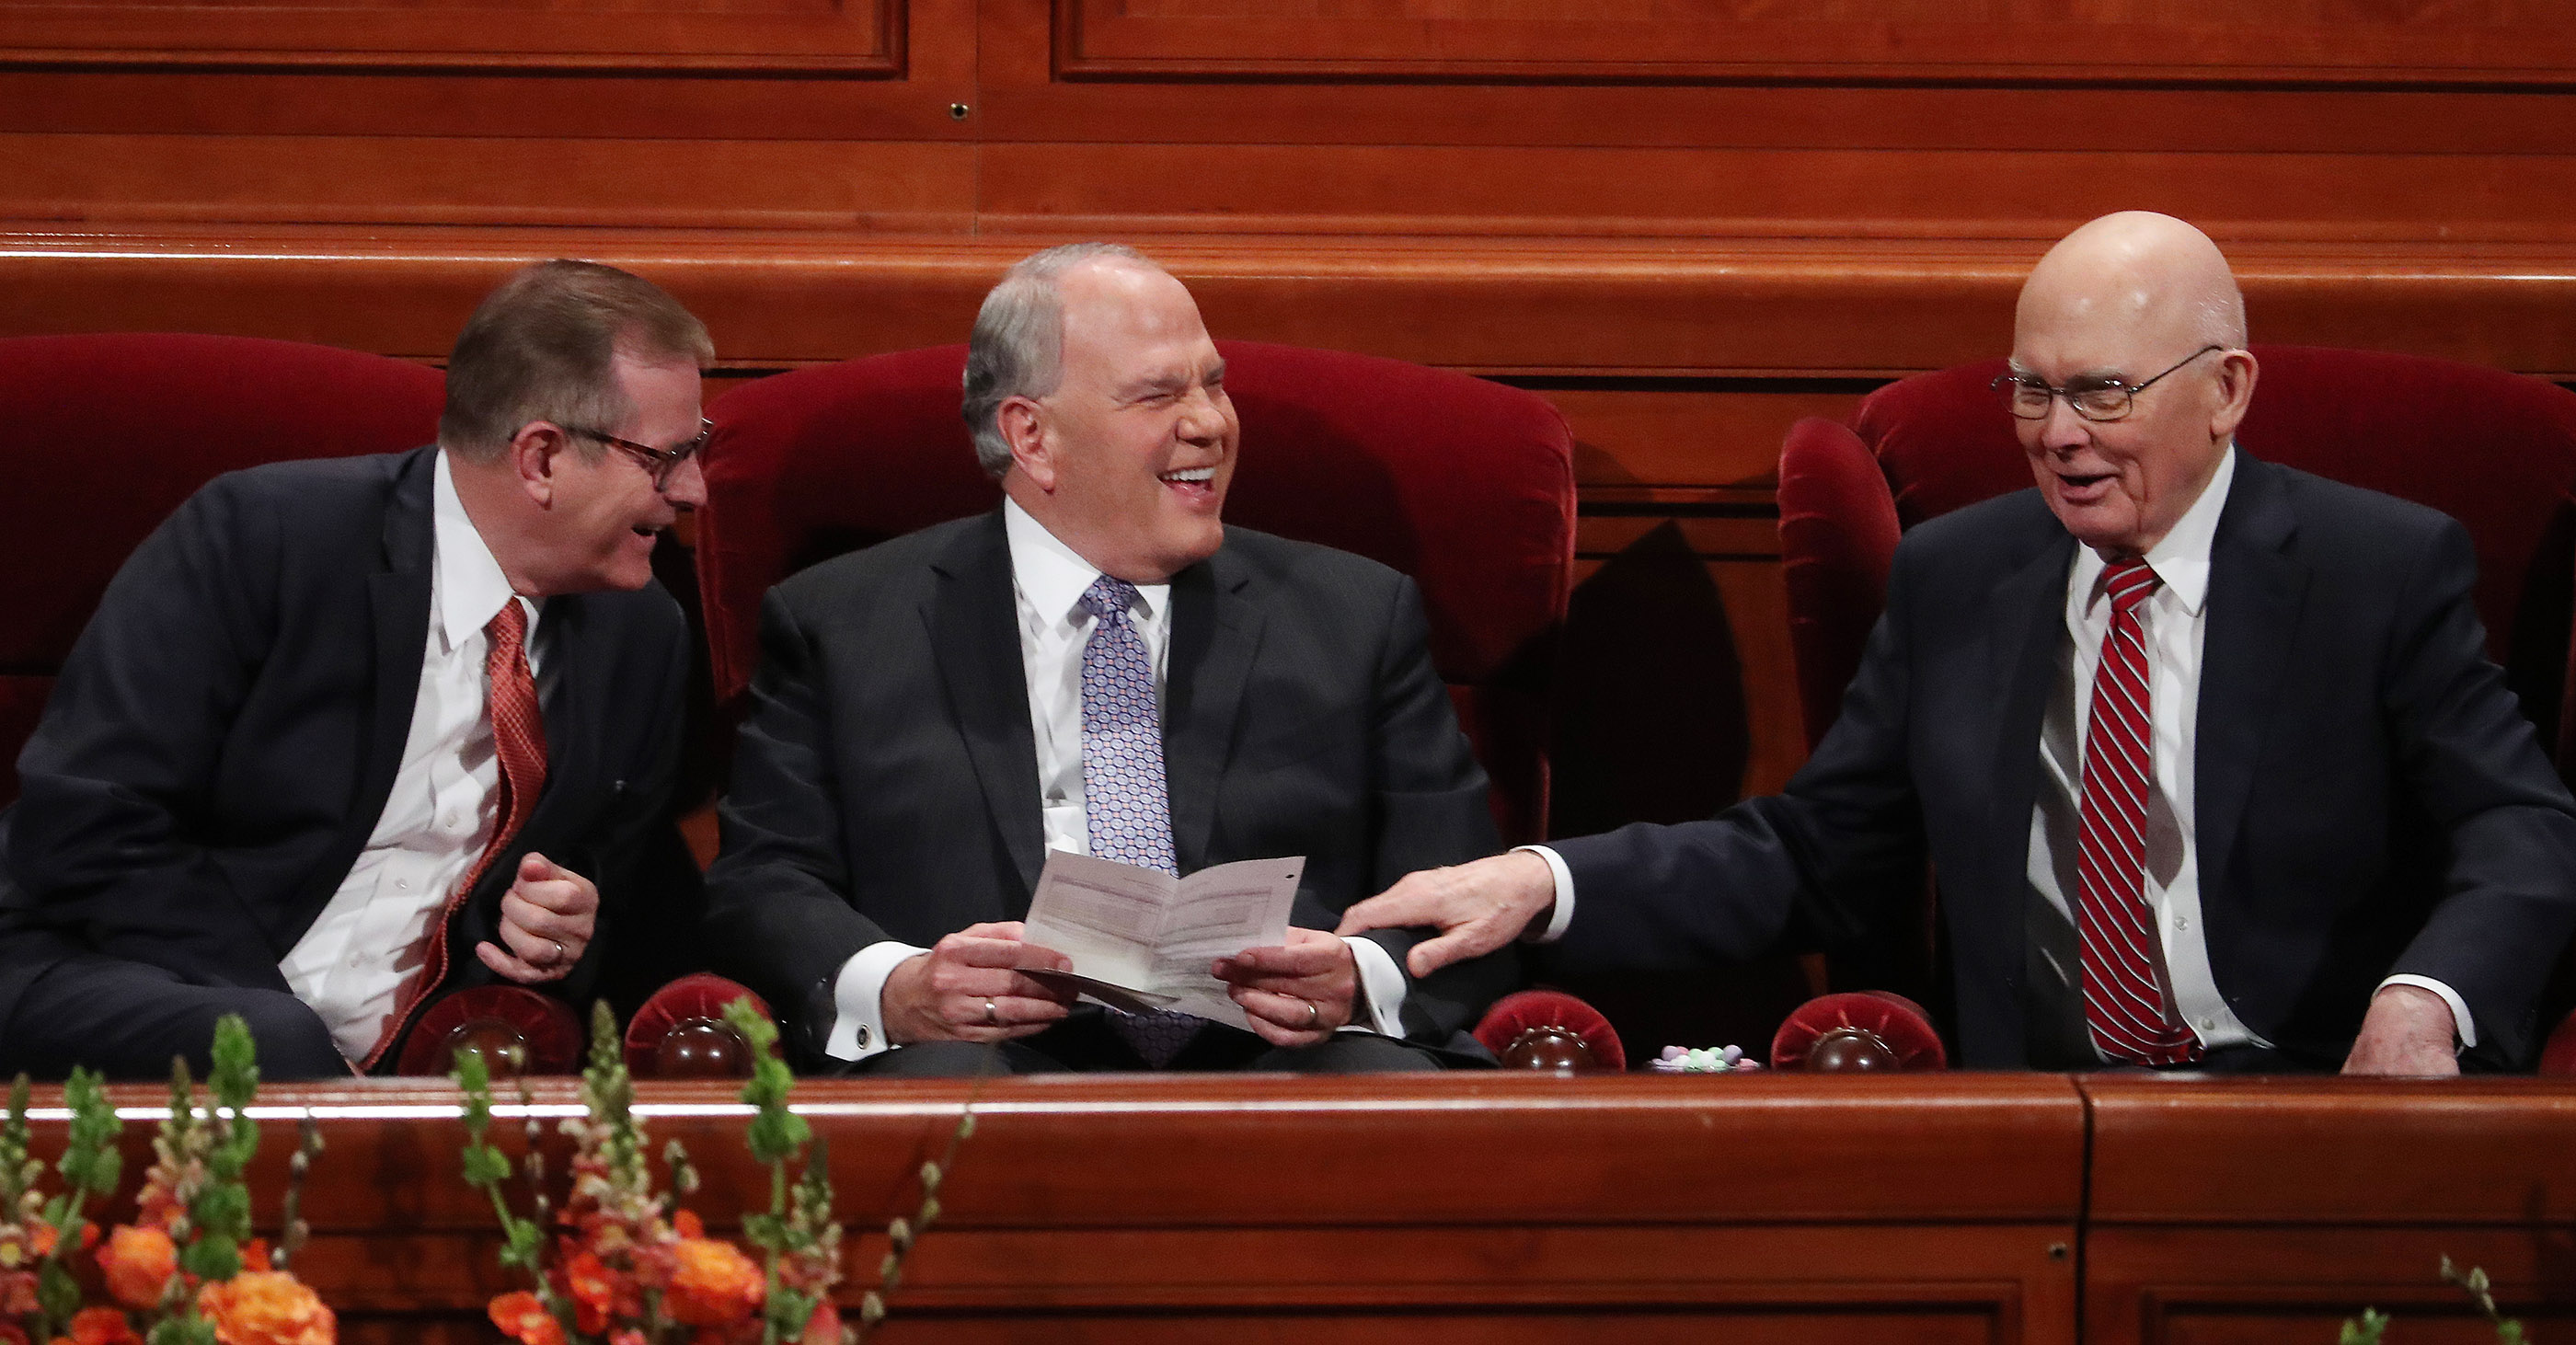 President Dallin H. Oaks, first counselor in the First Presidency, at right, talks with Elder Gary E. Stevenson, left, and Elder Ronald A. Rasband of the Twelve Apostles, prior to the concluding session of the 189th Annual General Conference of The Church of Jesus Christ of Latter-day Saints in Salt Lake City on Sunday, April 7, 2019.